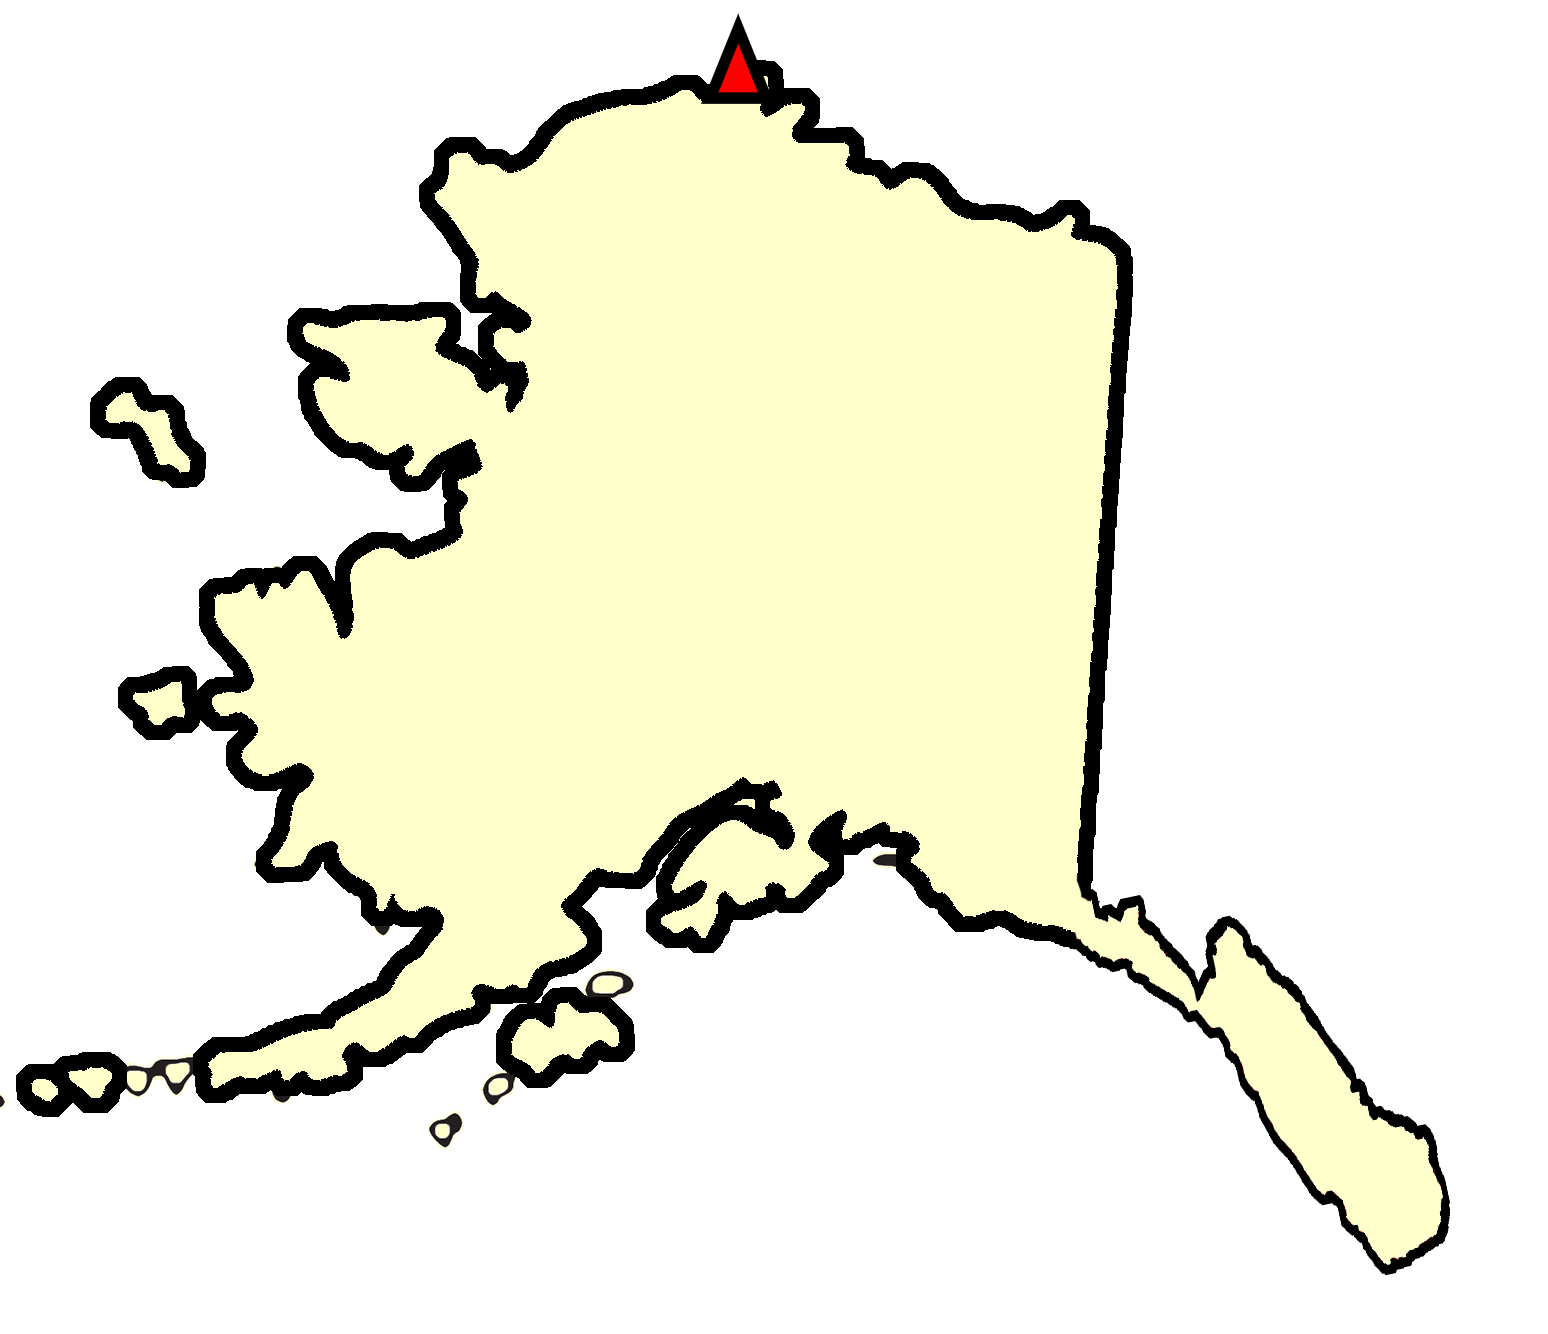 State map location for AK Utqiagvik